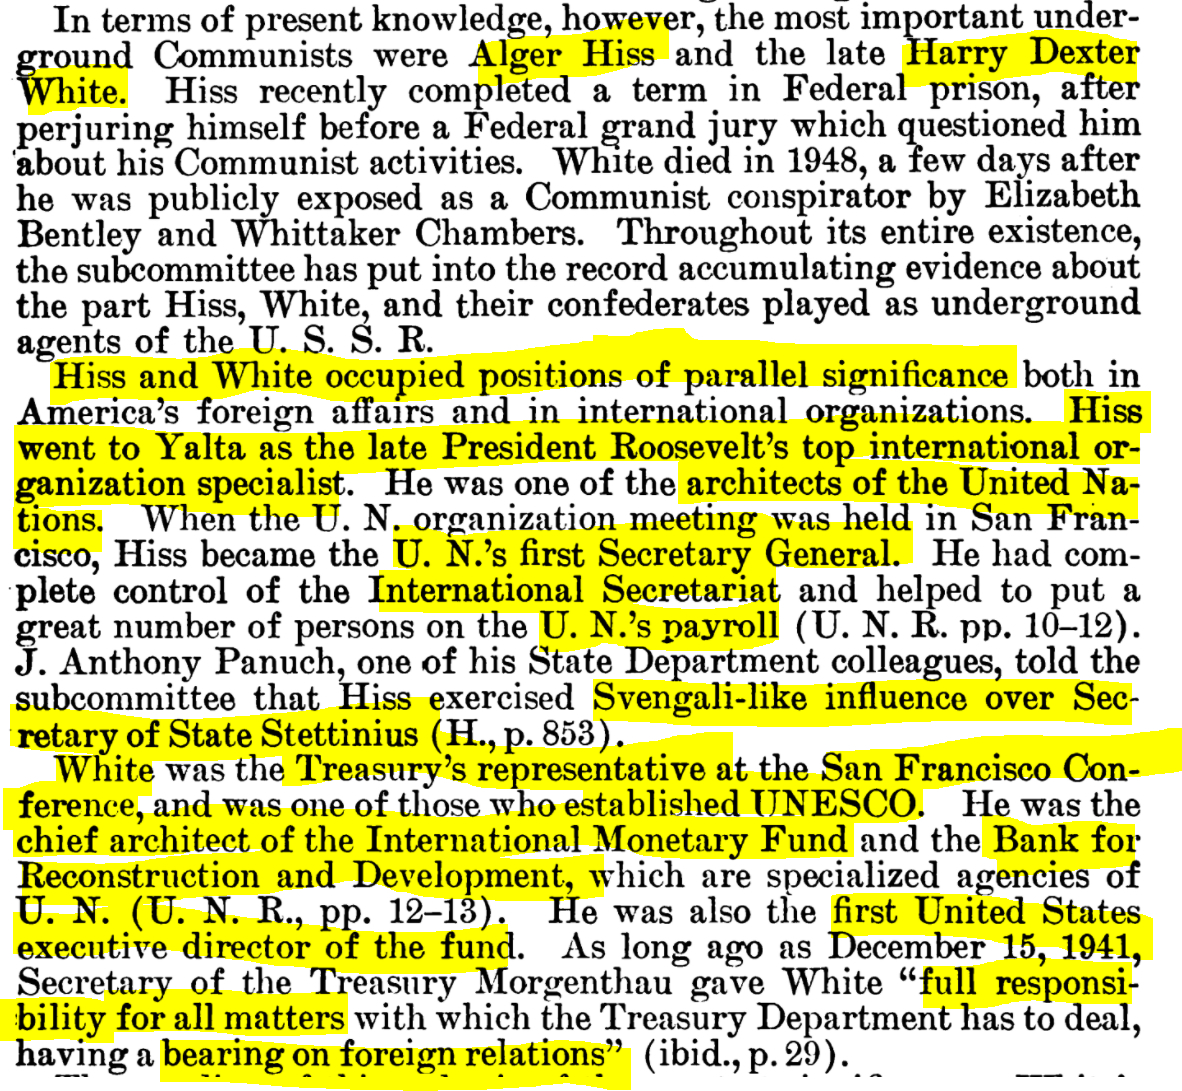 William Langer (ND), chairman. (Jan. 03, 1955). FIGURES IN A [INTERLOCKING] PATTERN [re. Institute of Pacific Relations, IPR]. Subcommittee Report, Investigation of Internal Security, Y4.J89/2:In 8/4, P41-102, Senate Judiciary Committee, 85 pgs., p. 9. GPO.